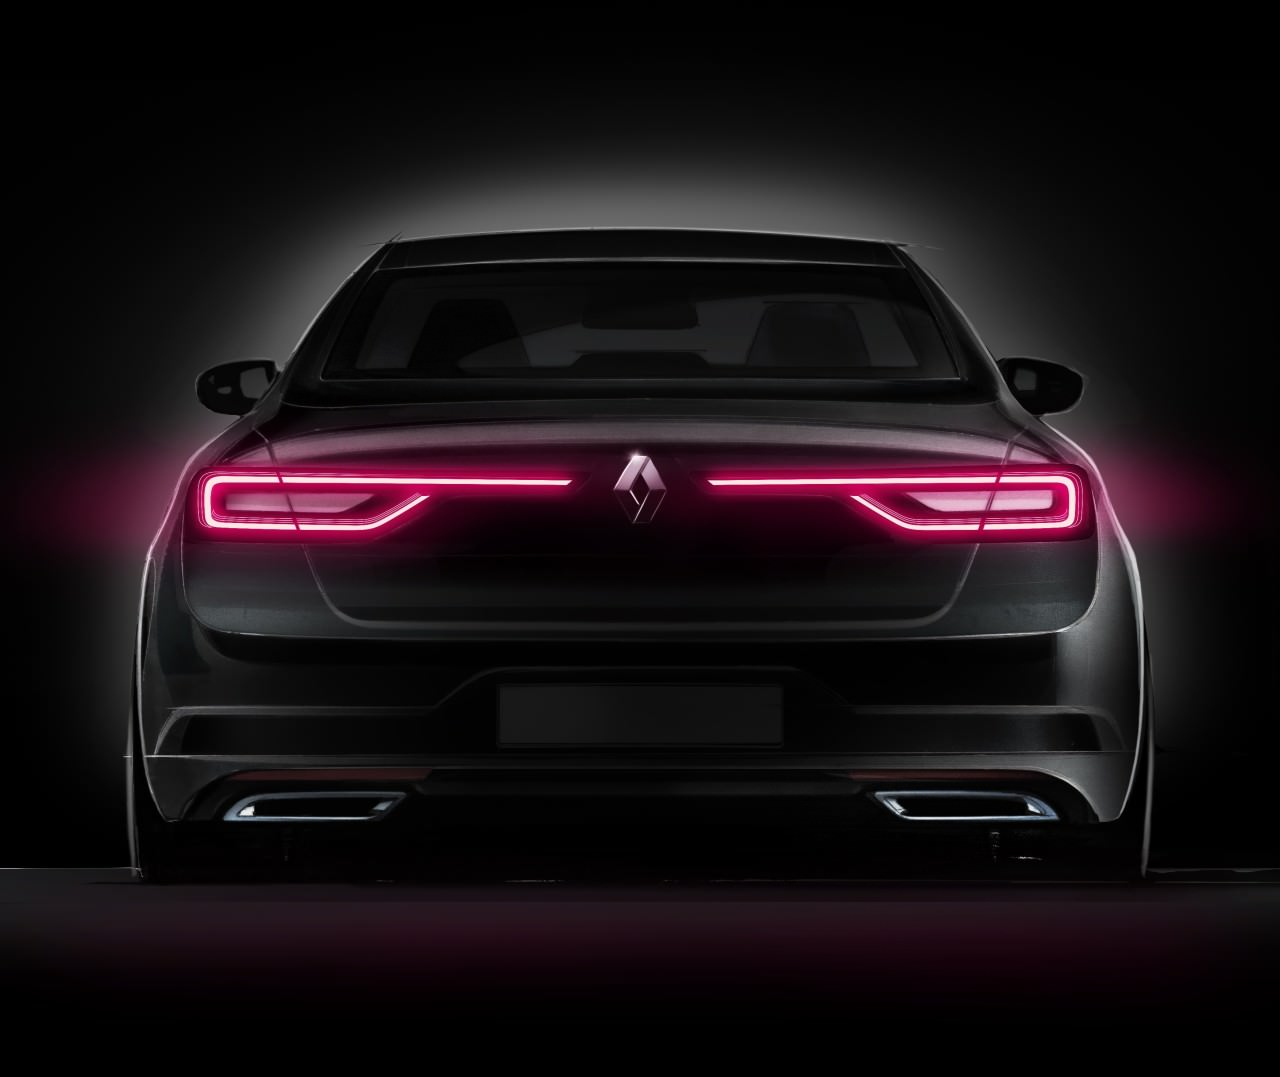 Conception - Renault Talisman - Signature visuelle - Feux à LED